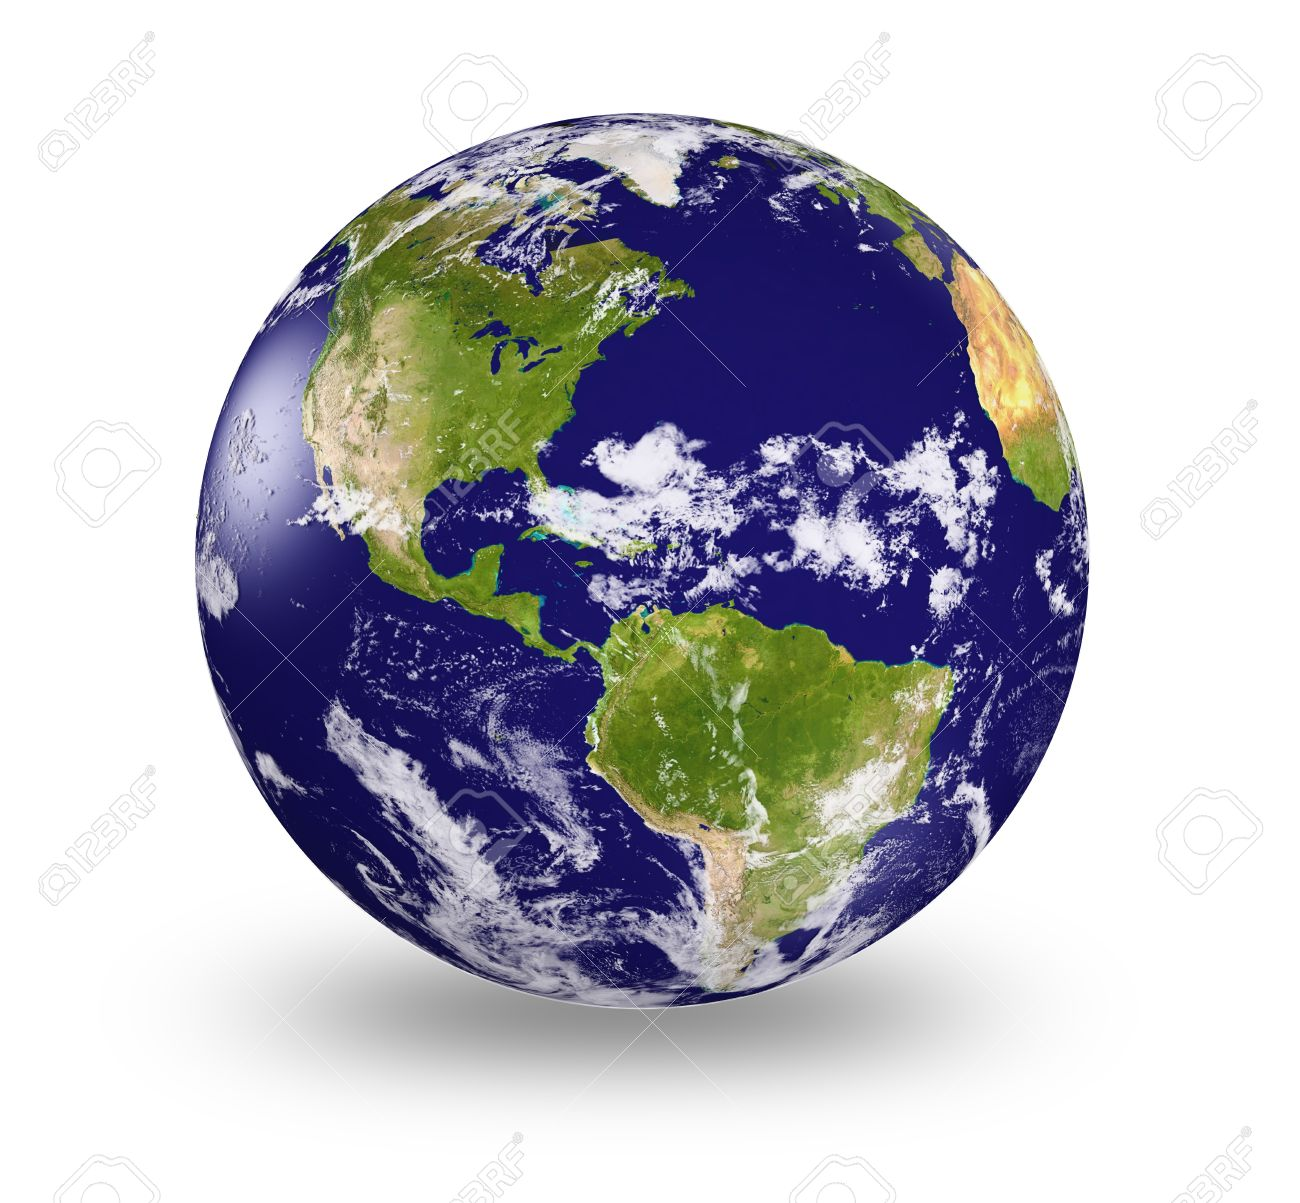 3d Earth Model With Shaded Relief And Clouds Cover. Stock Photo ...